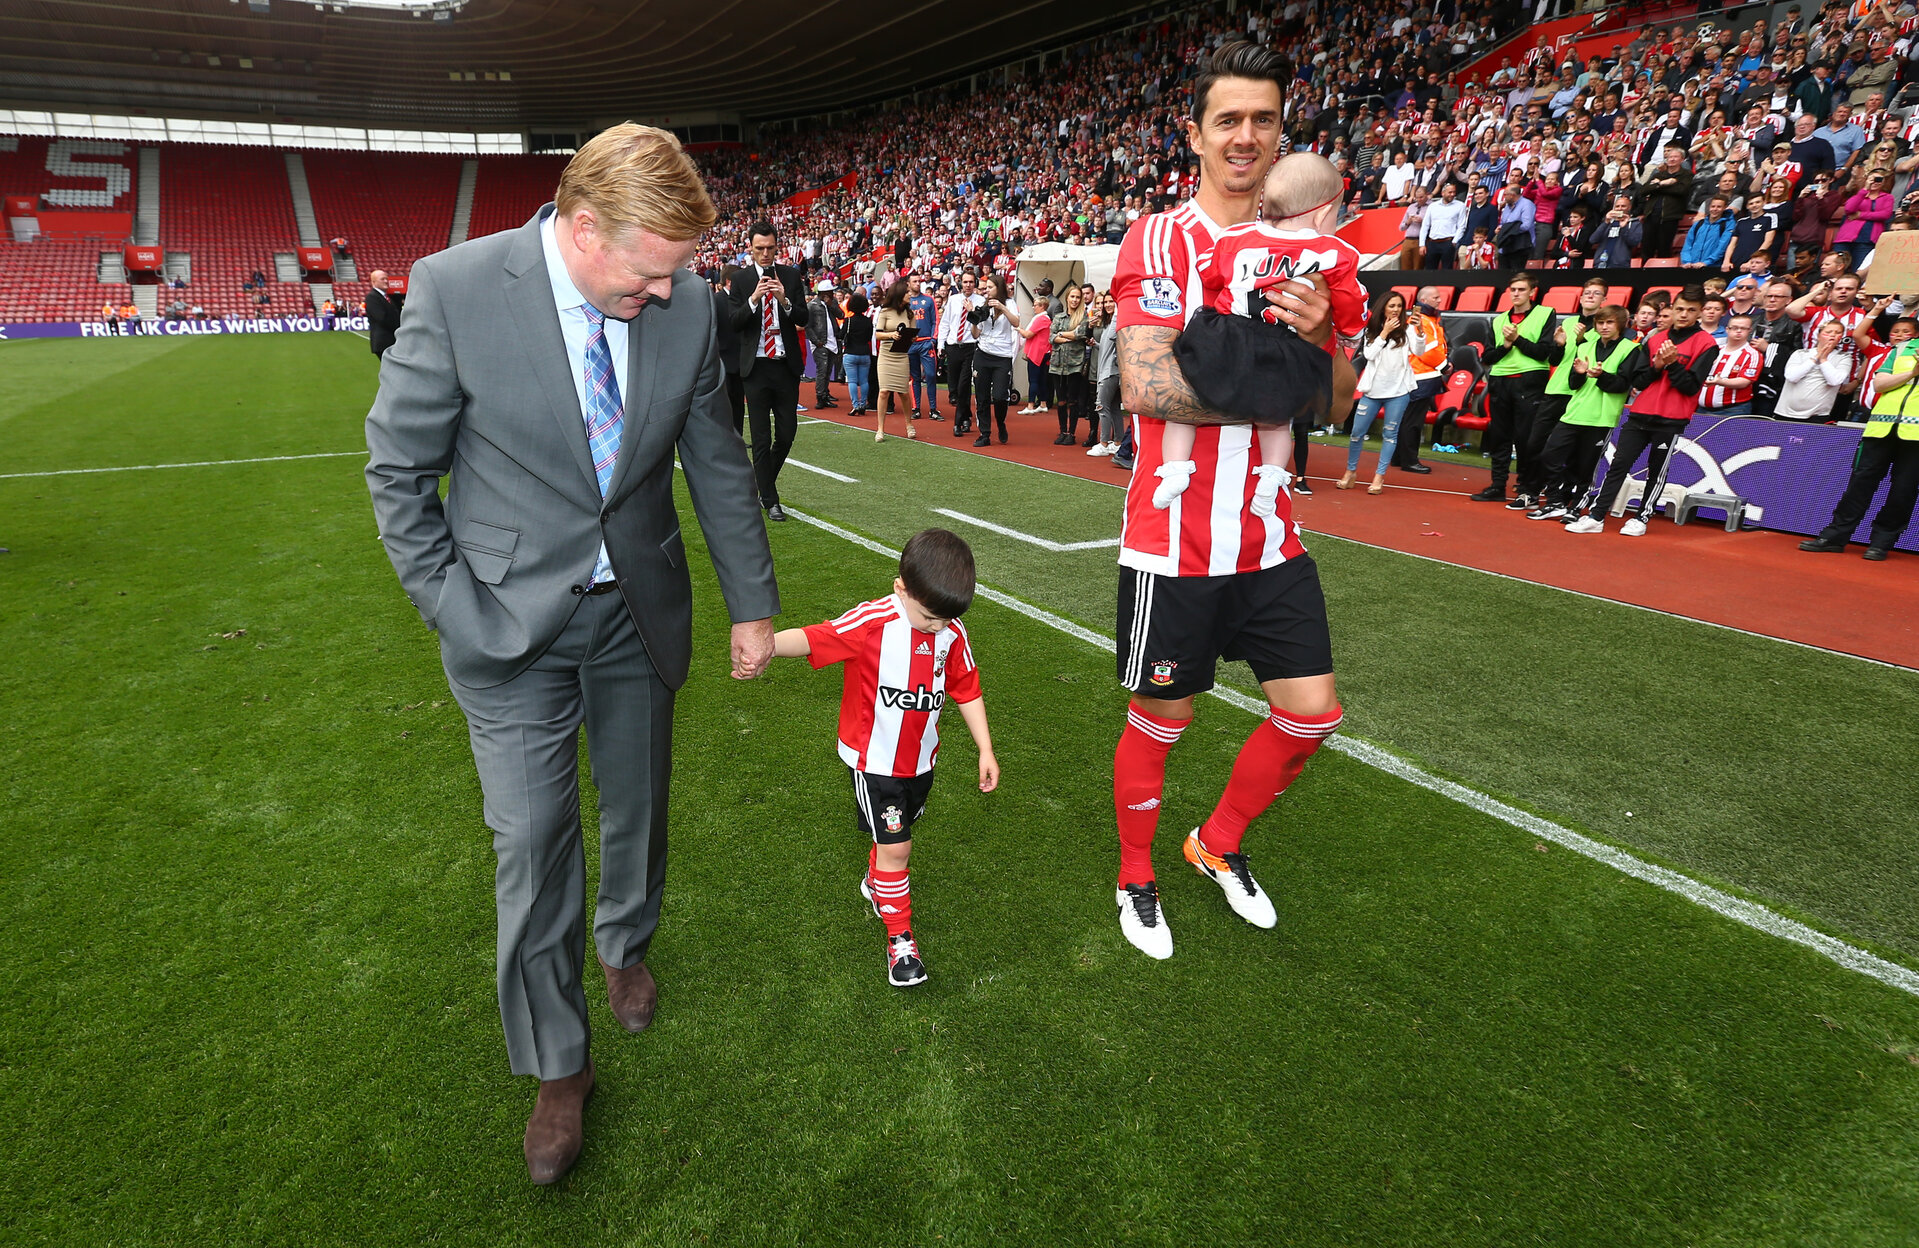 Ronald Koeman and Jose Fonte during the Barclays Premier League match between Southampton and Crystal Palace at St Mary's Stadium, Southampton, England on 15 May 2016.